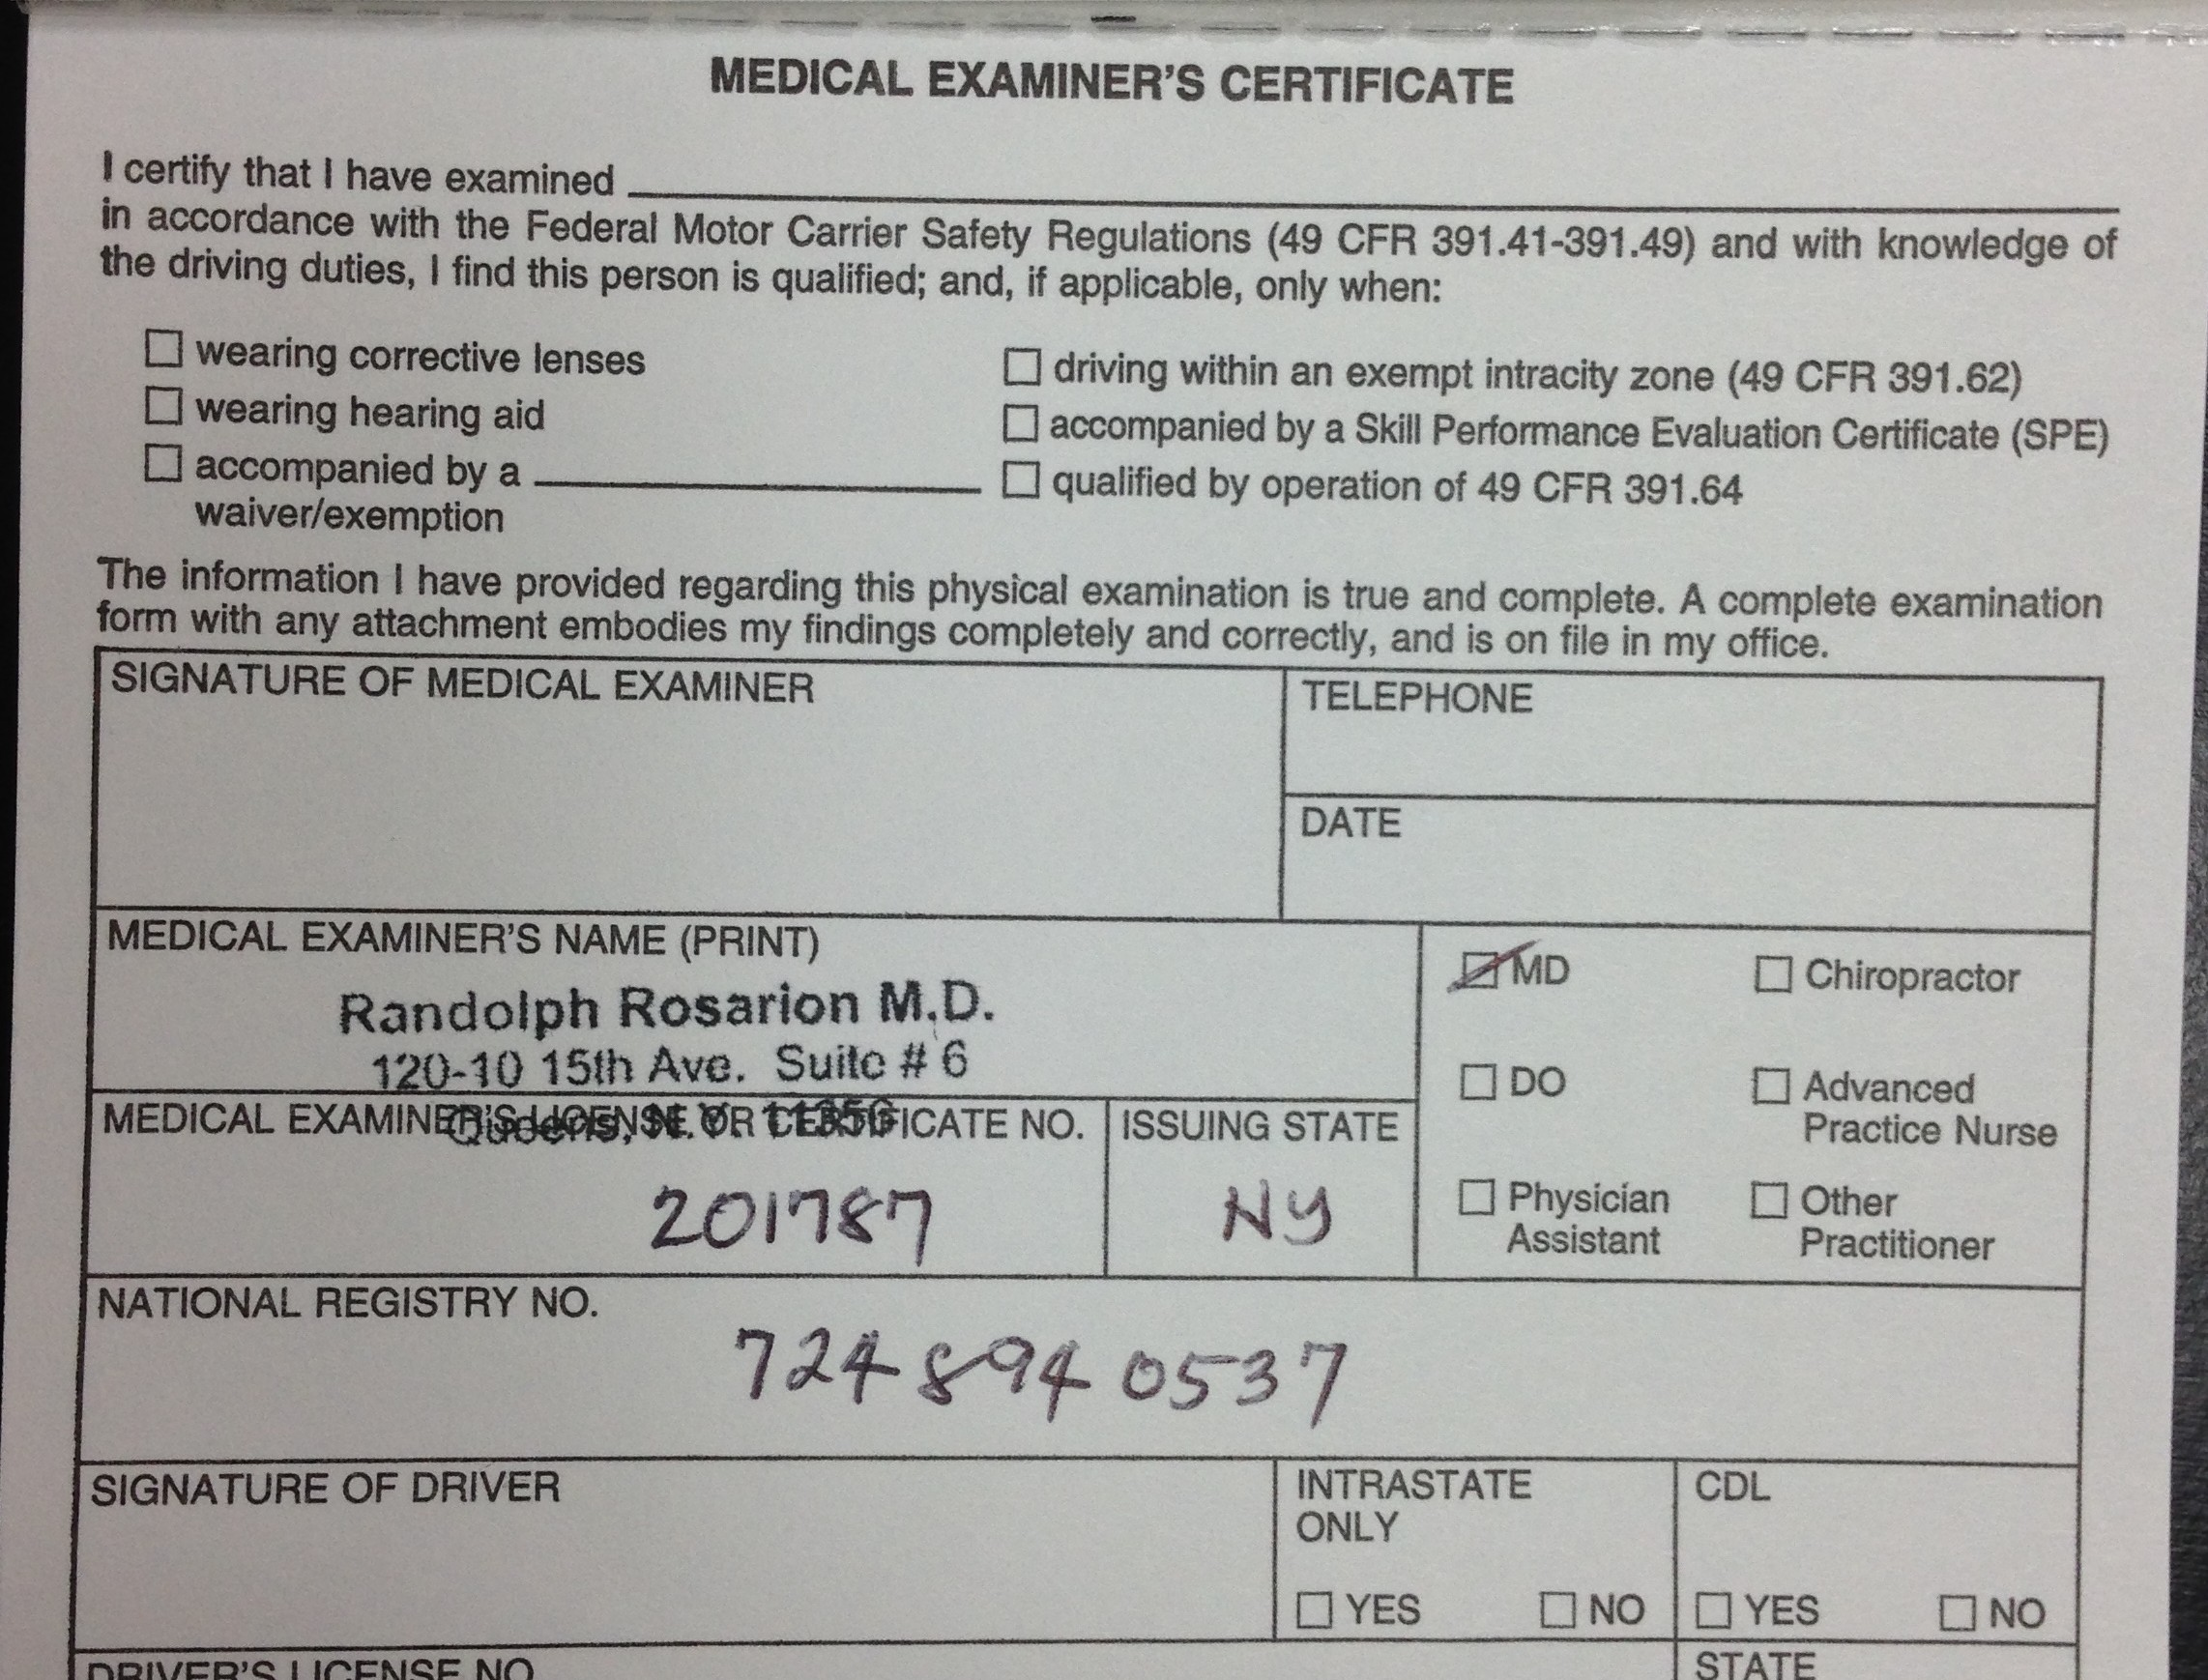 New Forms For 2014 DOT Physicals: Medical Examineru0027s Certificate And  Medical Examination Report Form U2013 DOT Physical Rules Regulations| Randolph  Rosarion ...